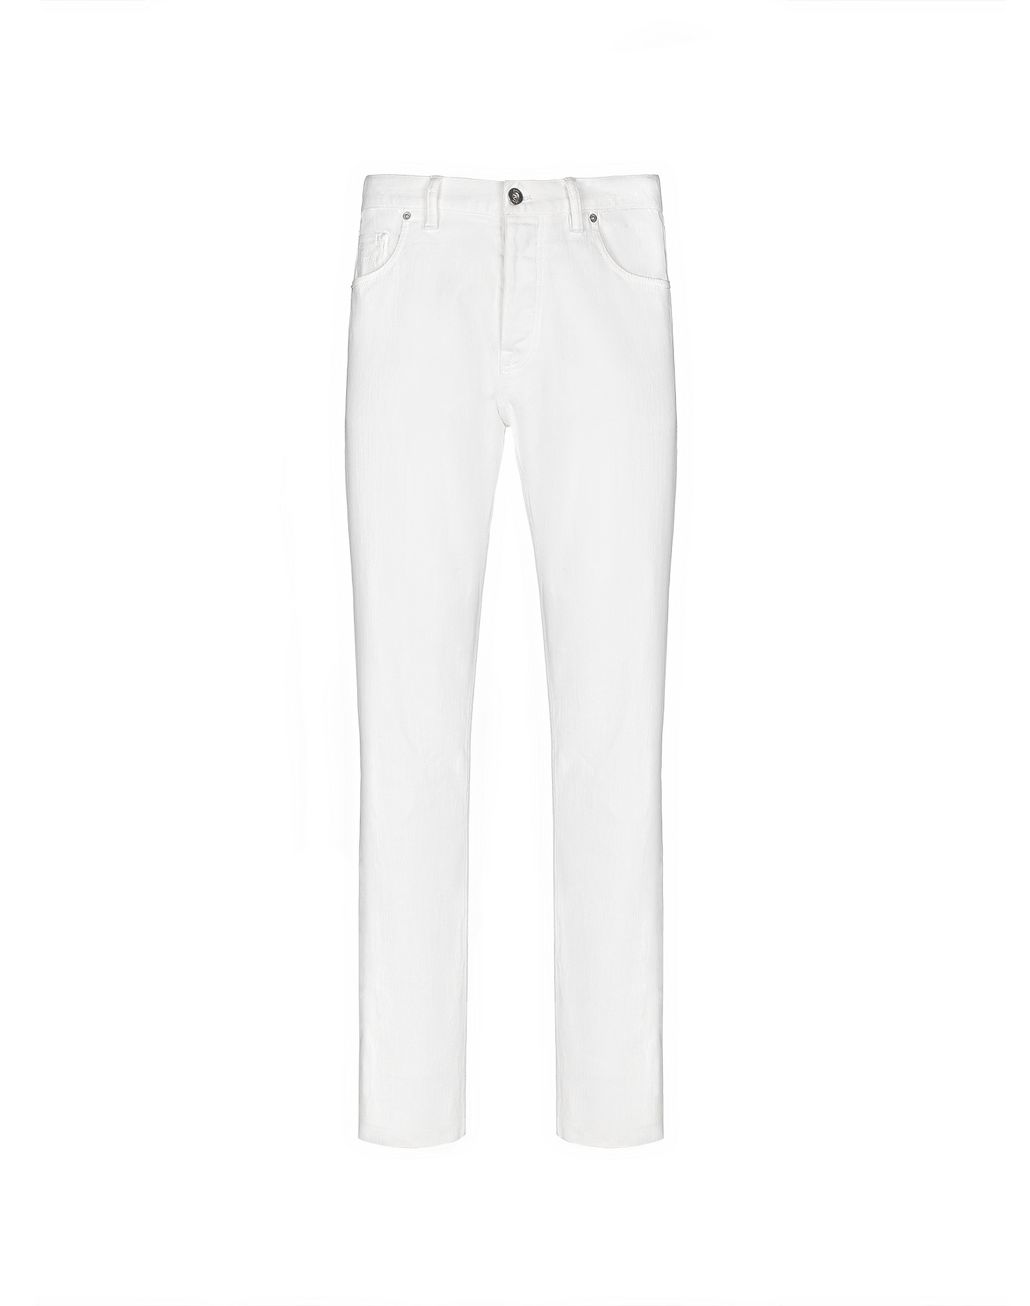 BRIONI White Denim   Trousers Man f